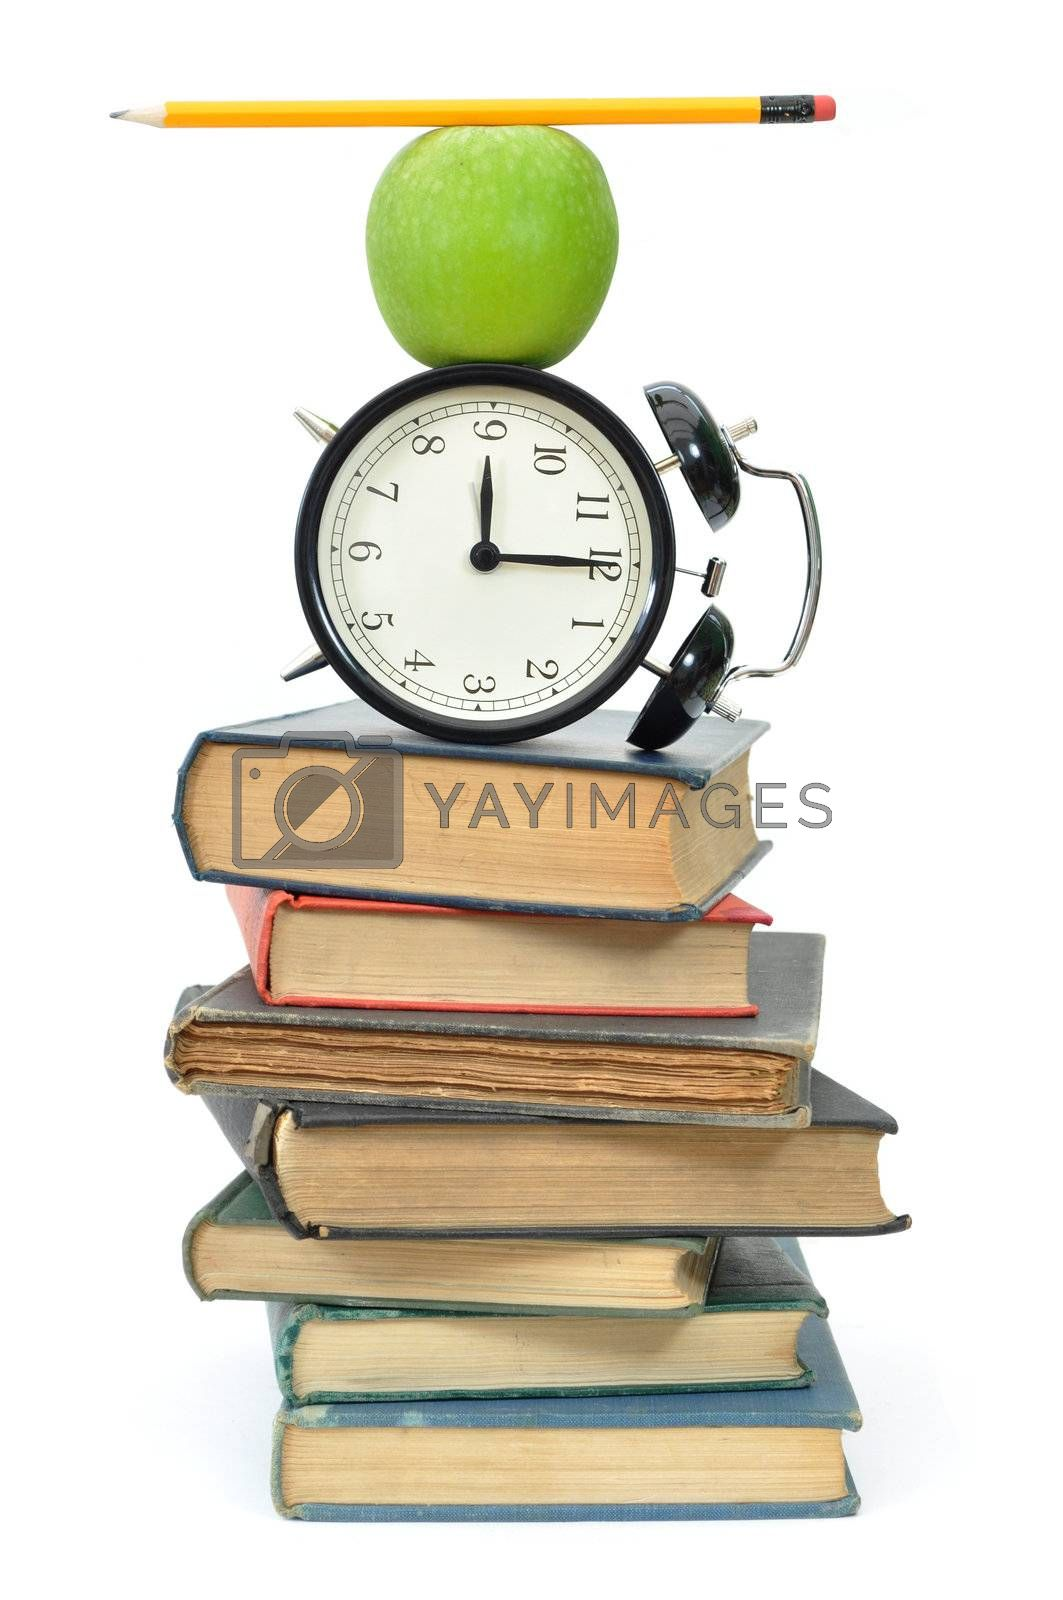 Balancing act of objects, including an apple and closk, on top of a stack of books